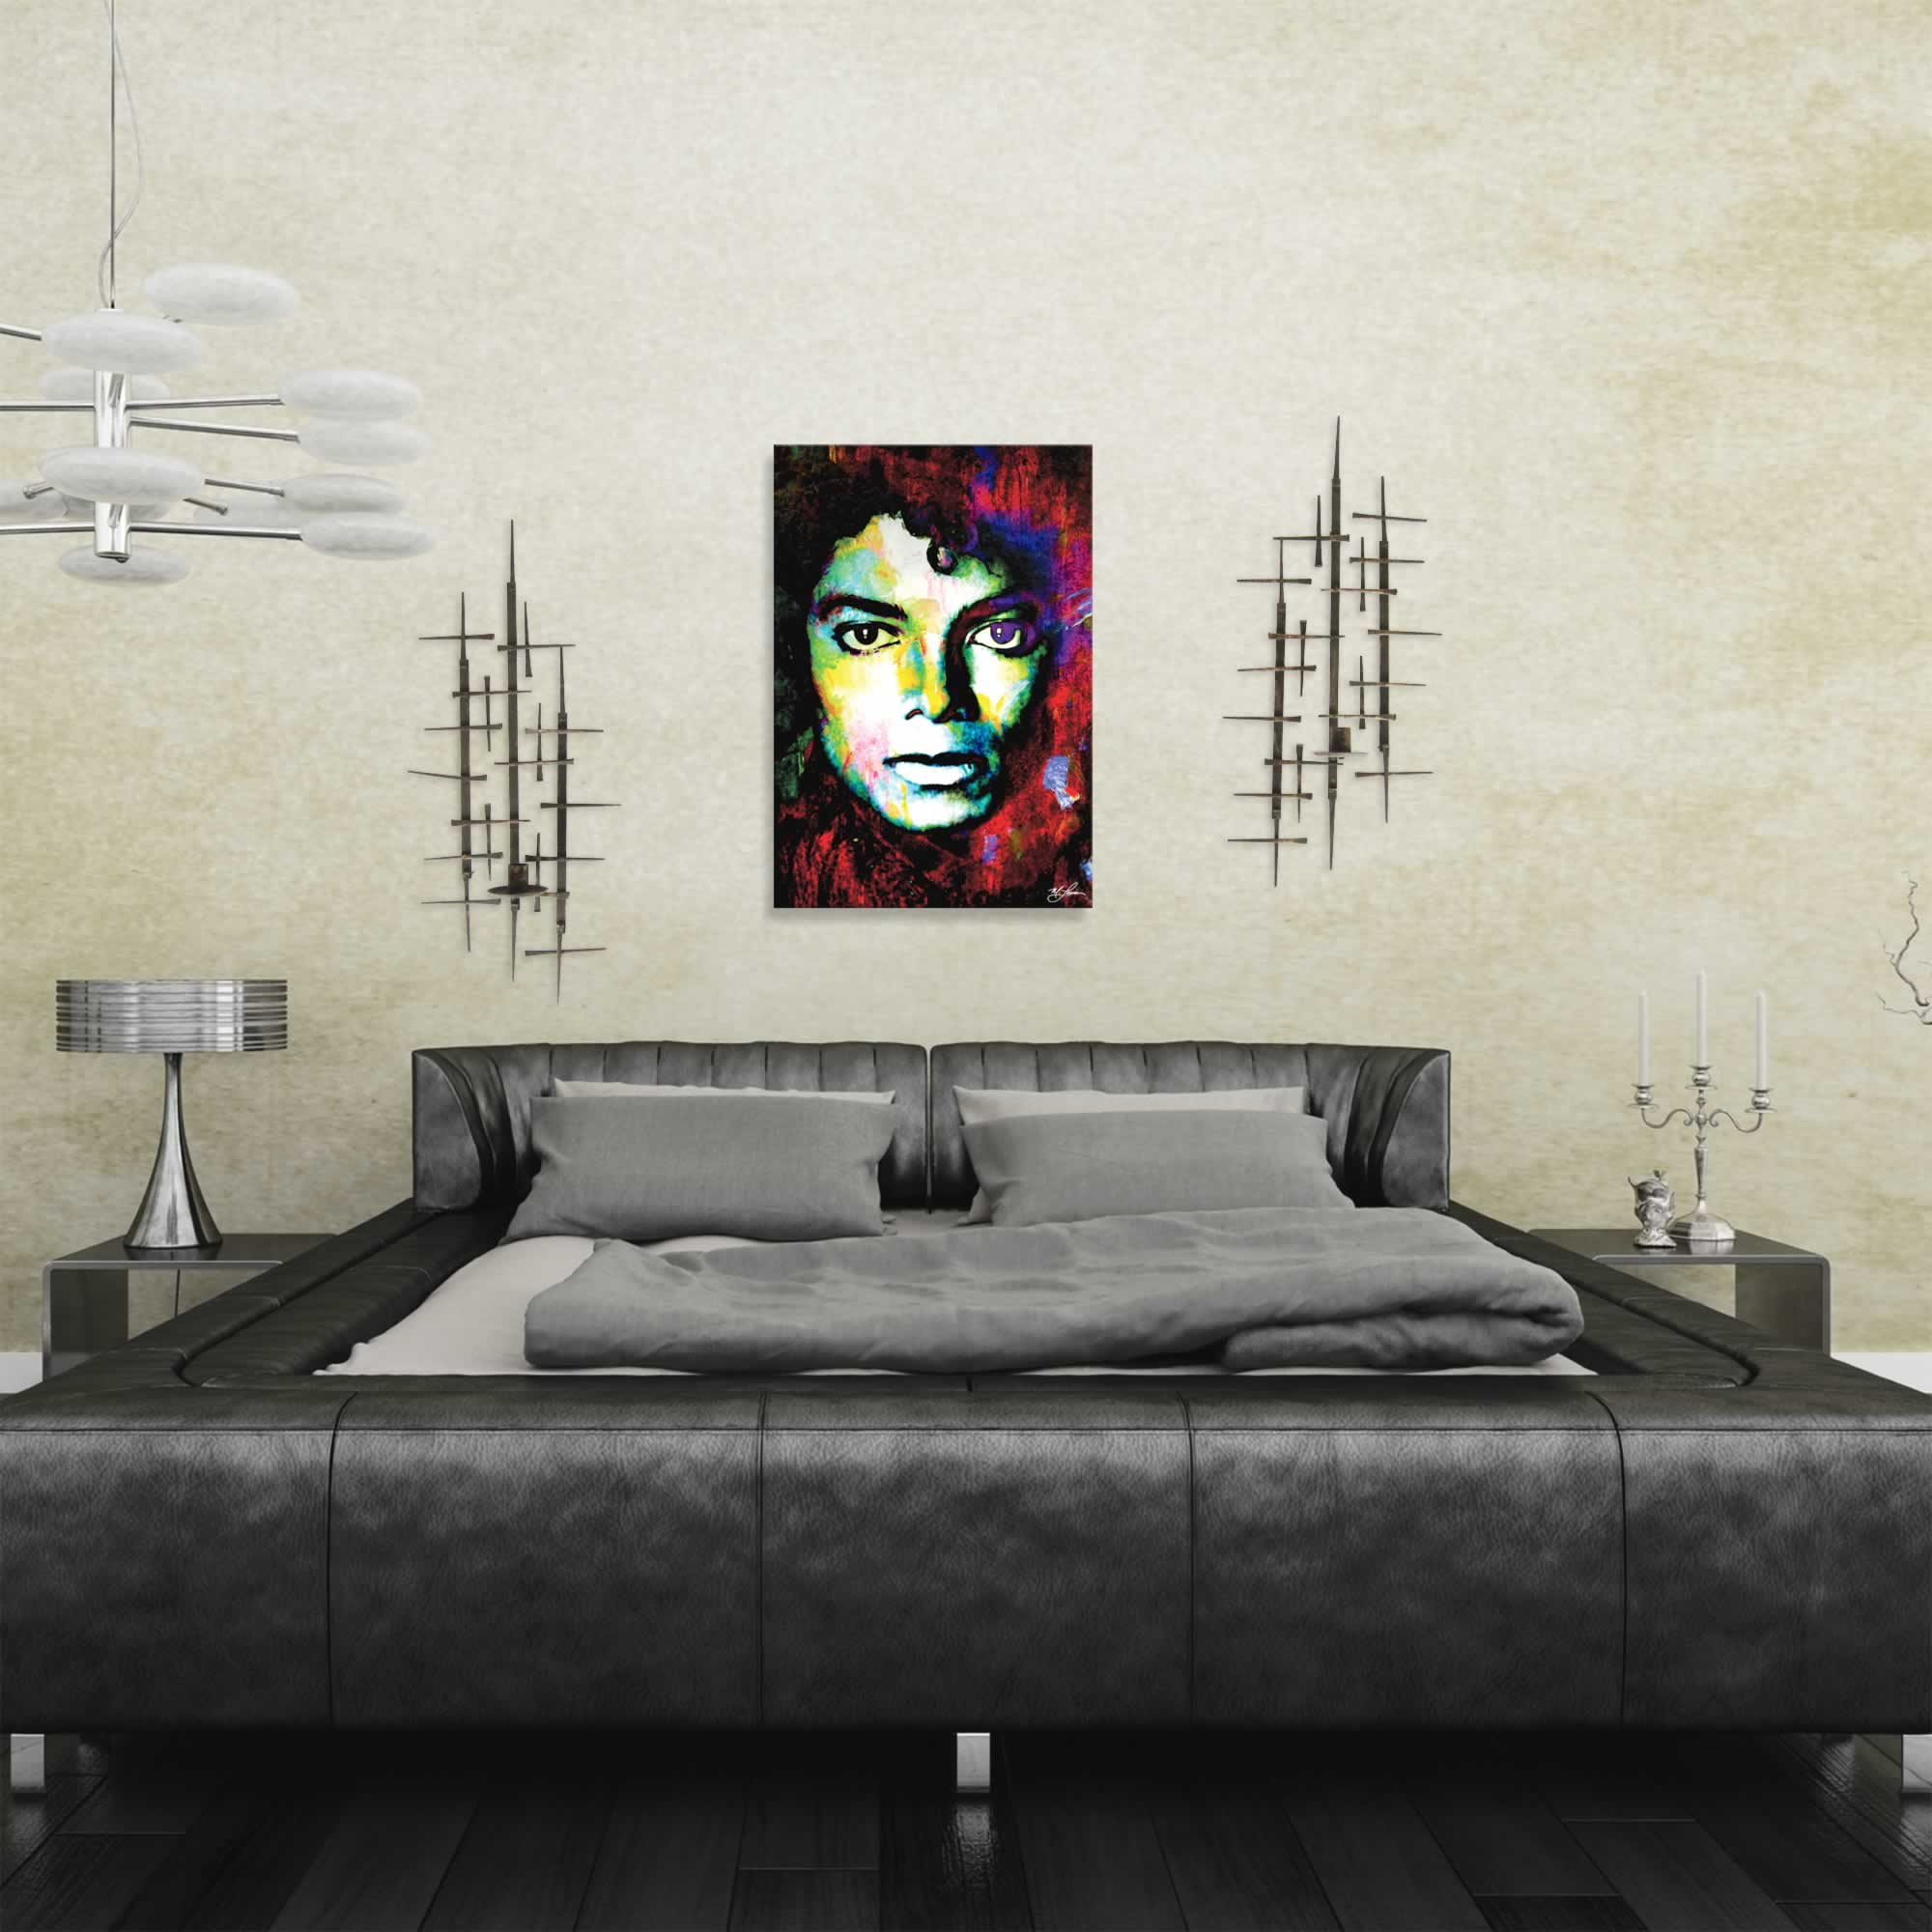 Michael Jackson Study 1 by Mark Lewis - Celebrity Pop Art on Metal or Plexiglass - ML0029